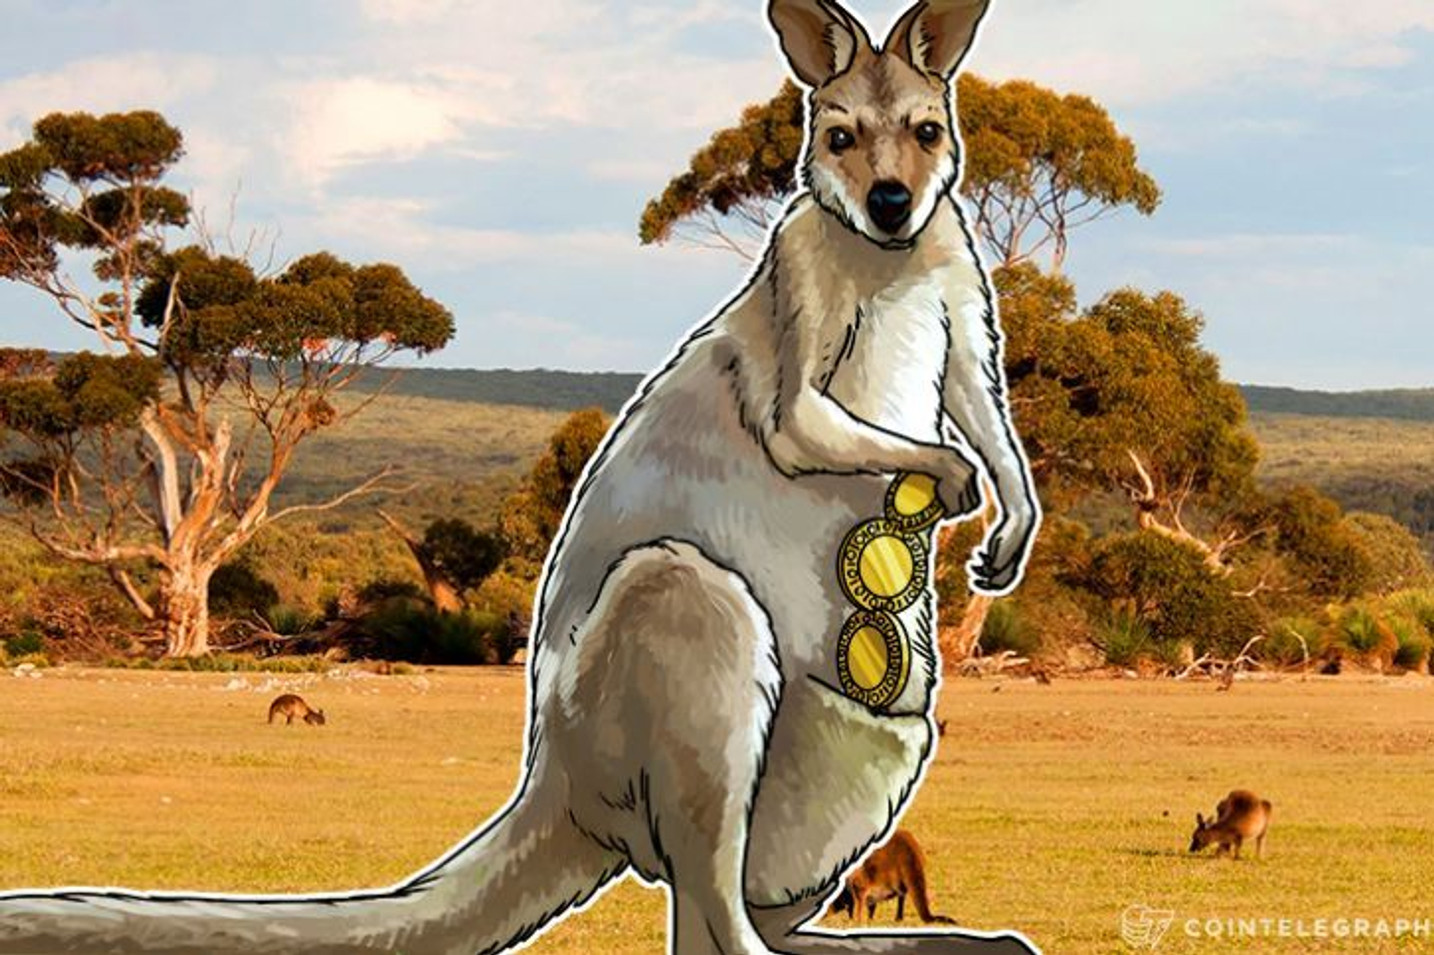 Australian Central Bank Should Adopt Bitcoin: Bipartisan Senate Campaign